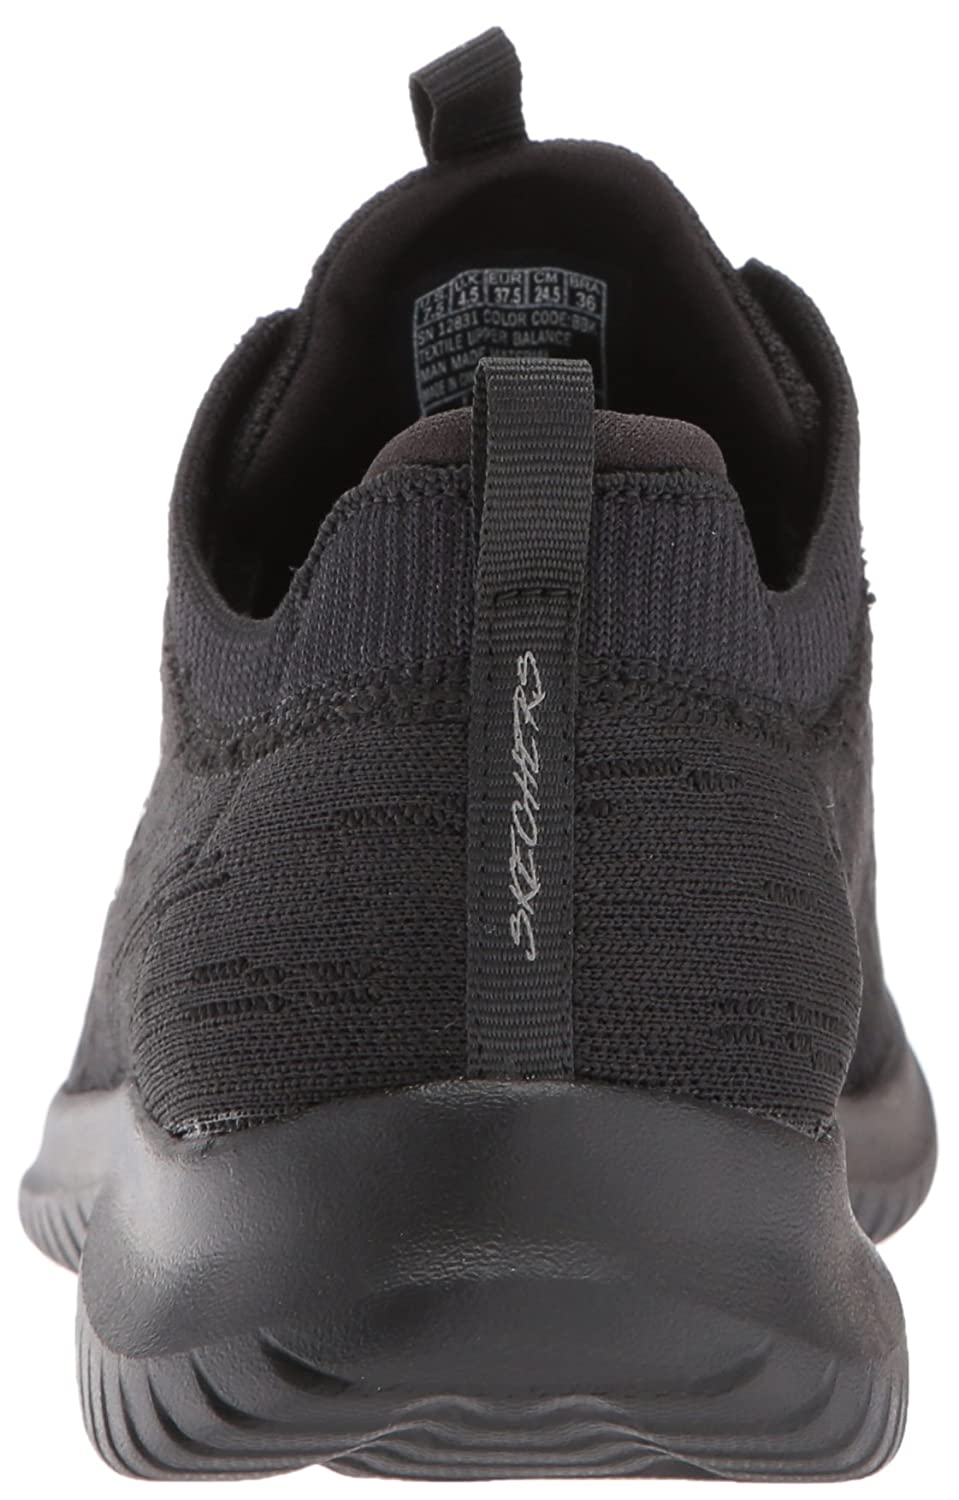 Skechers Women's B074BWXZFH Ultra Flex Bright Horizon Sneaker B074BWXZFH Women's 8.5 B(M) US|Black/Black 62cc83